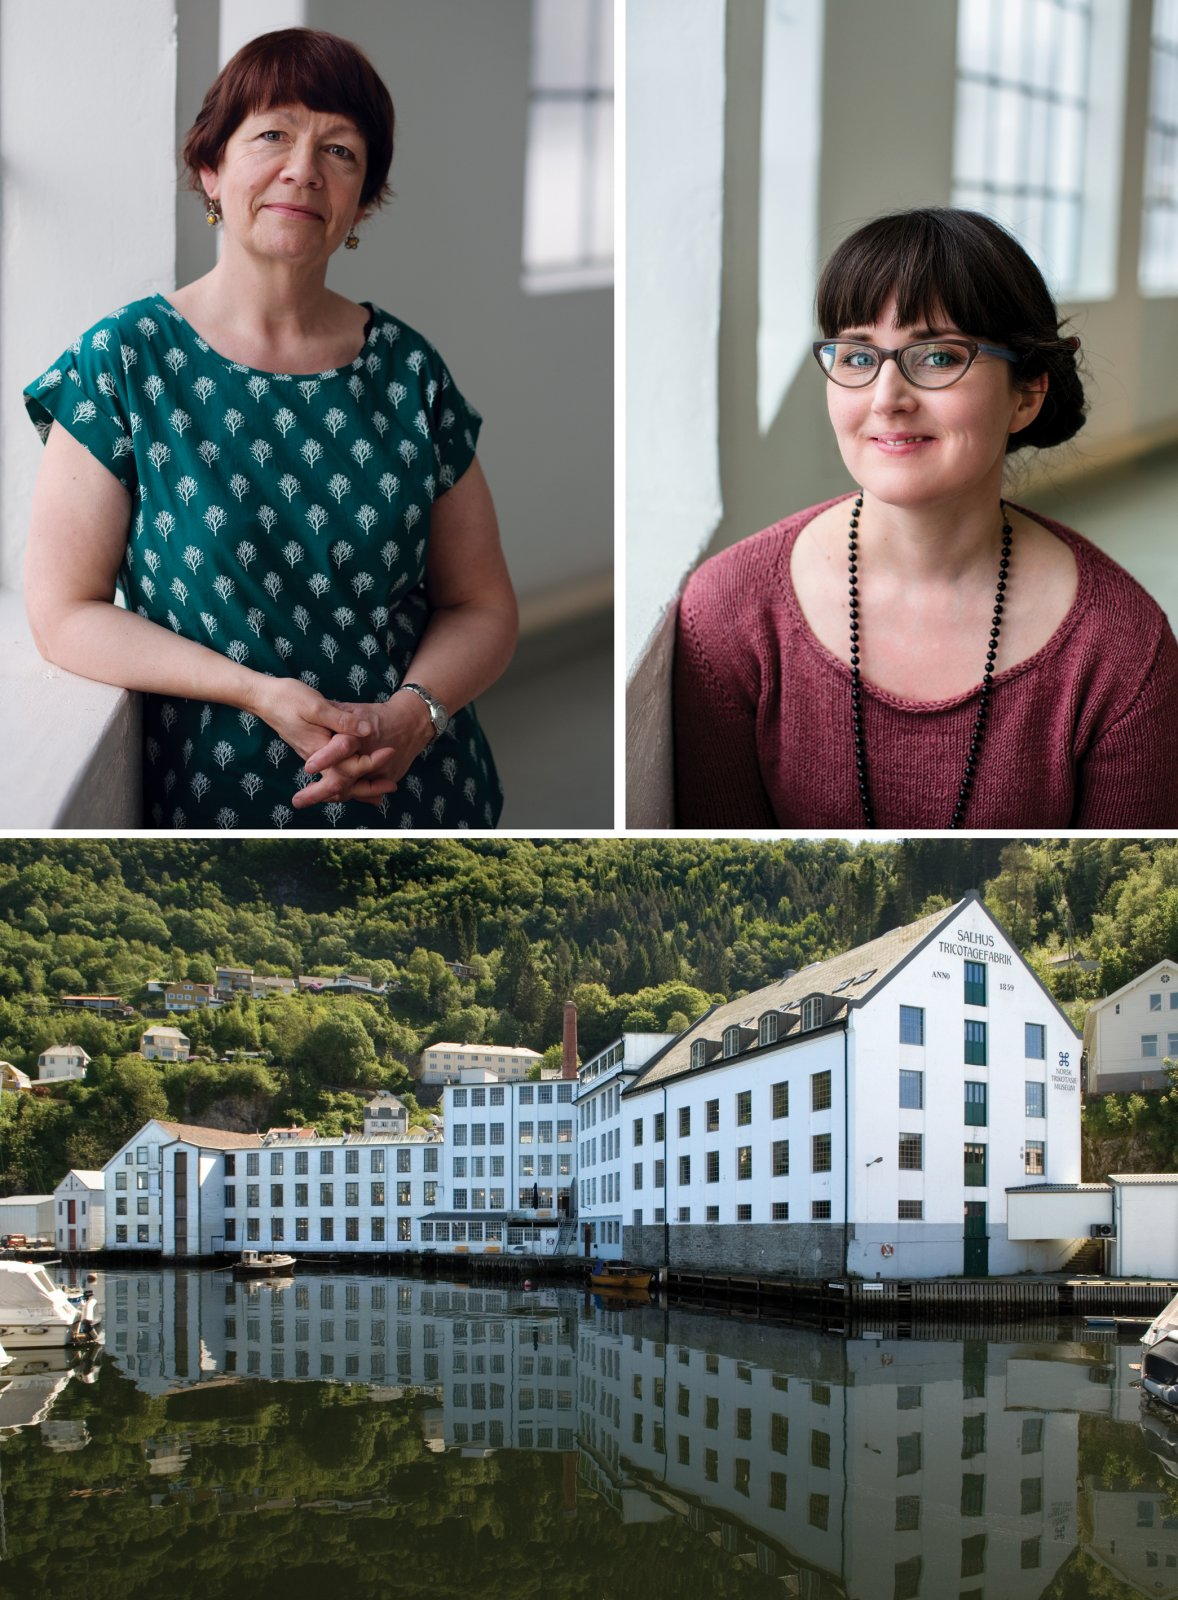 CLOSED Fiberside Chats: Travel to Norway - Traditional Knitting Designs, February 6th